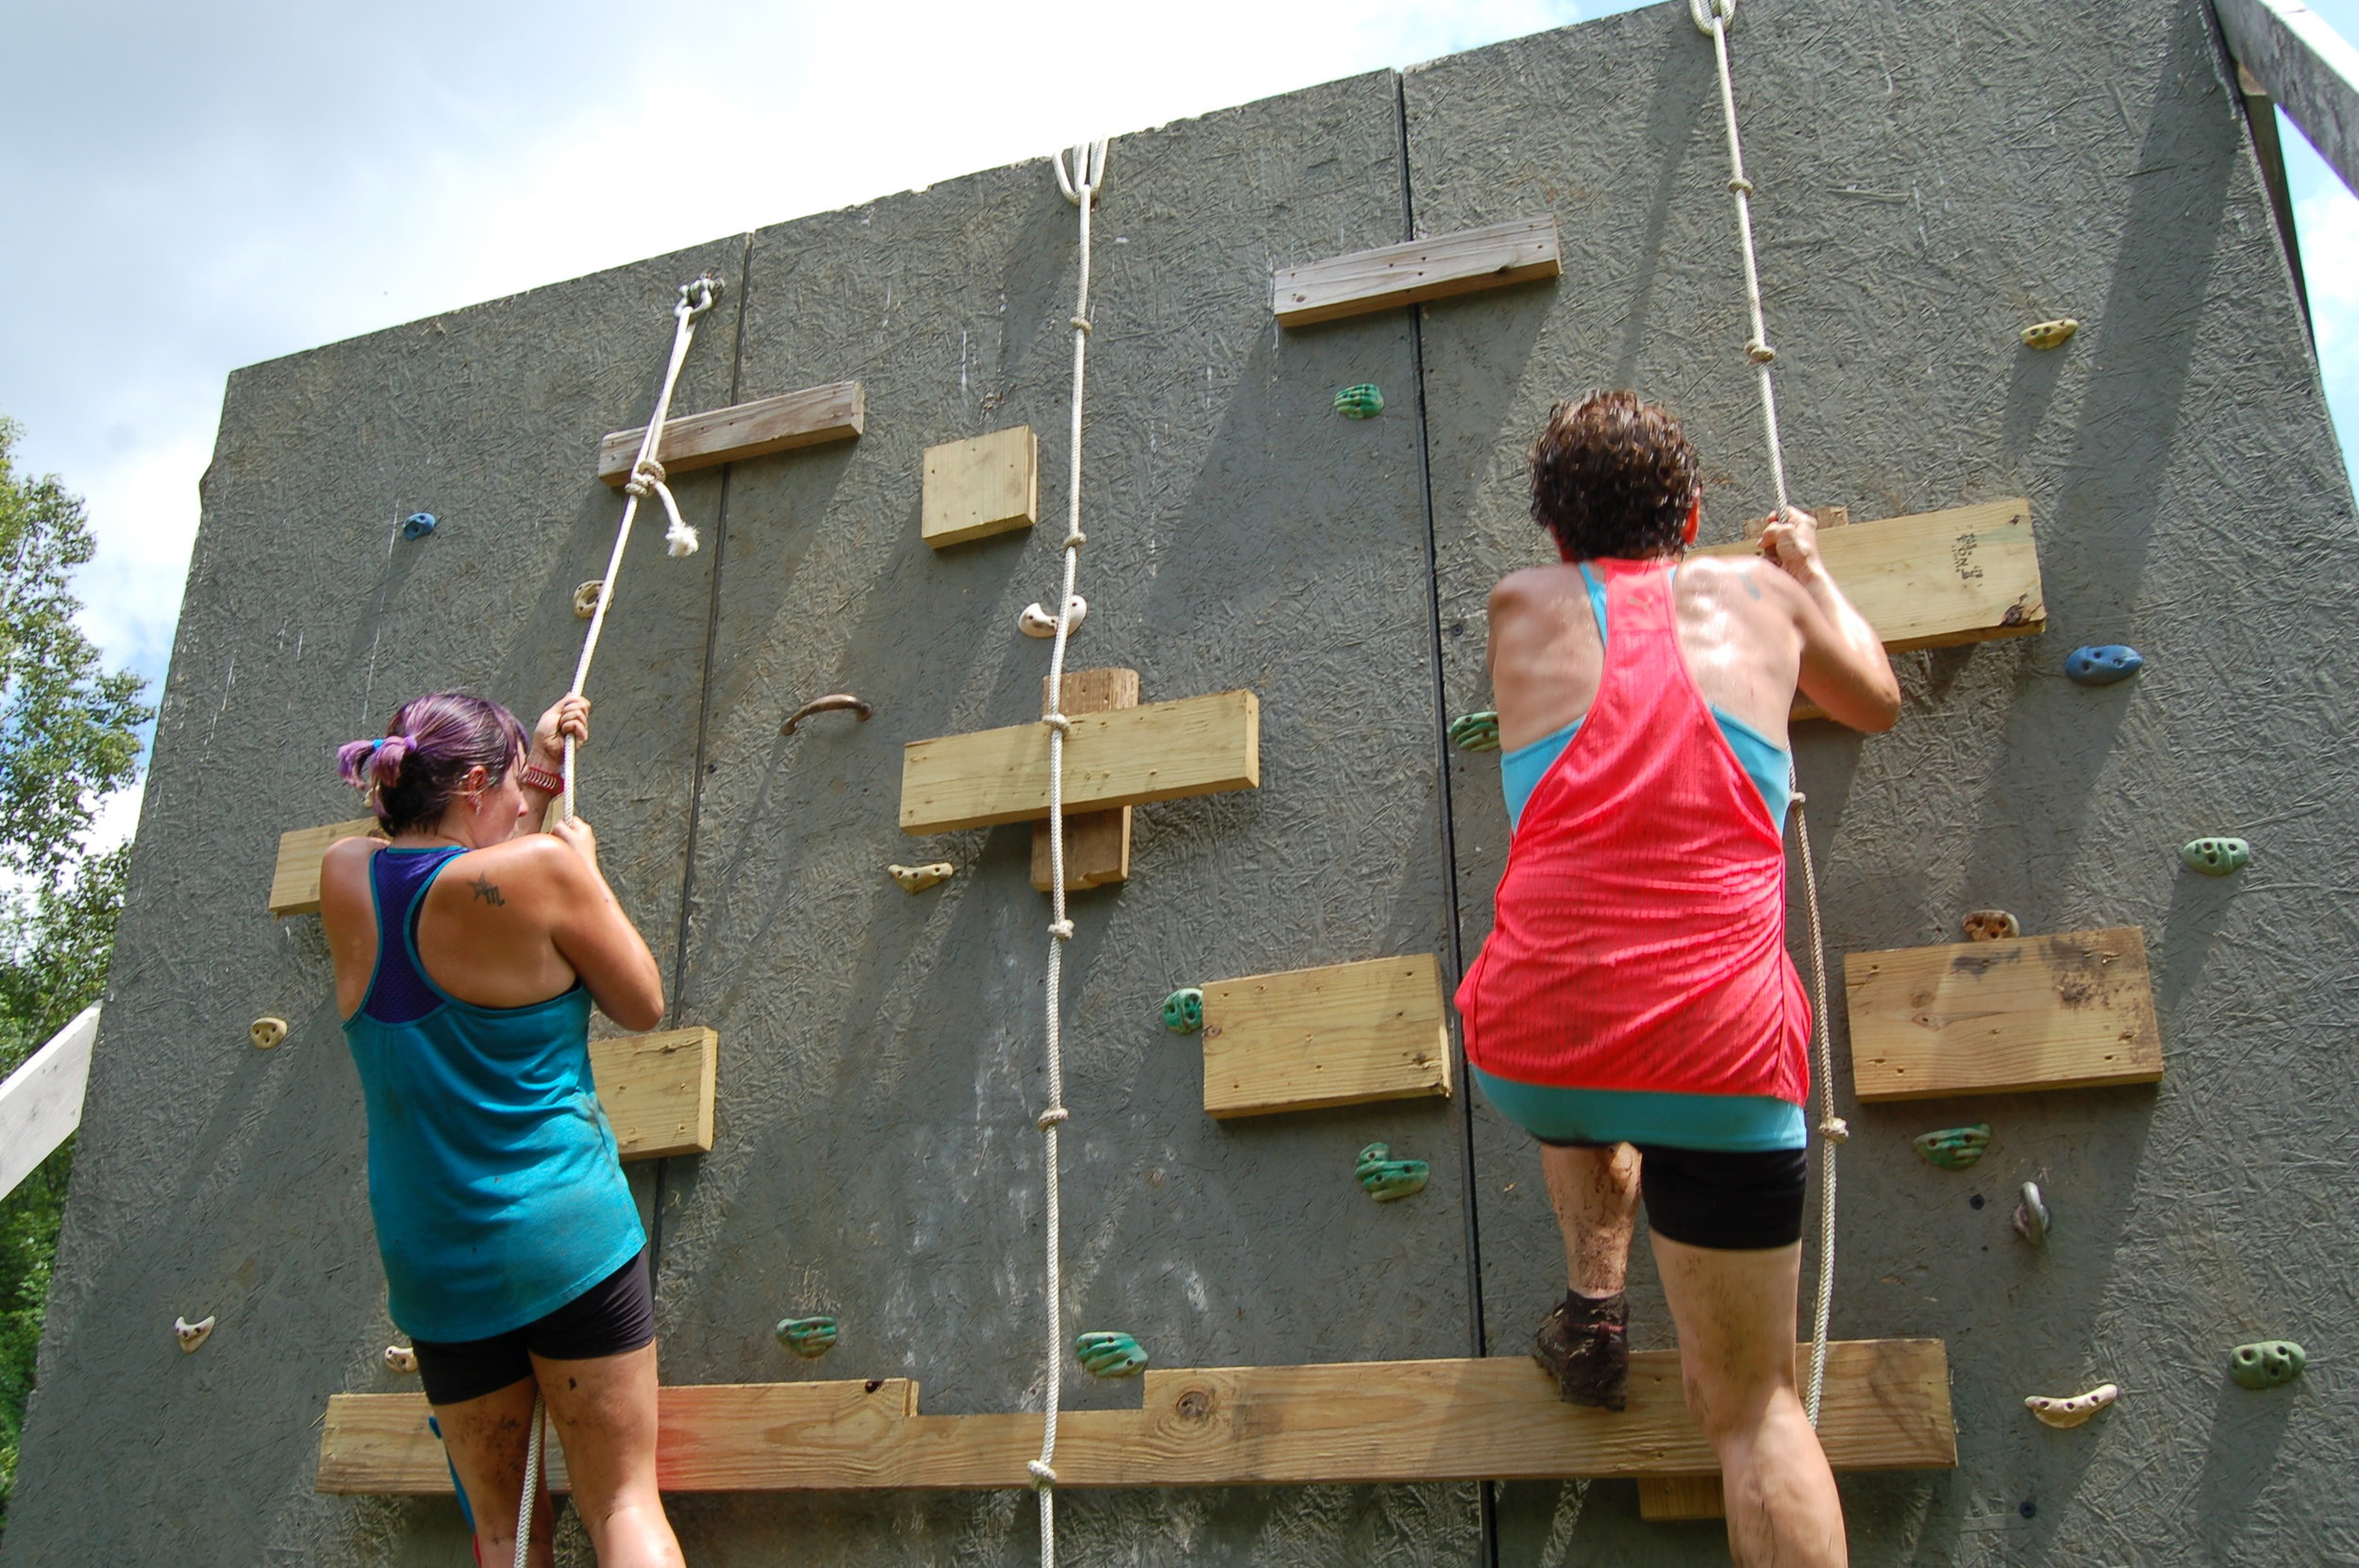 Mother-daughter duo, Erica and Brenda Preston of Canton tackle the rope wall.